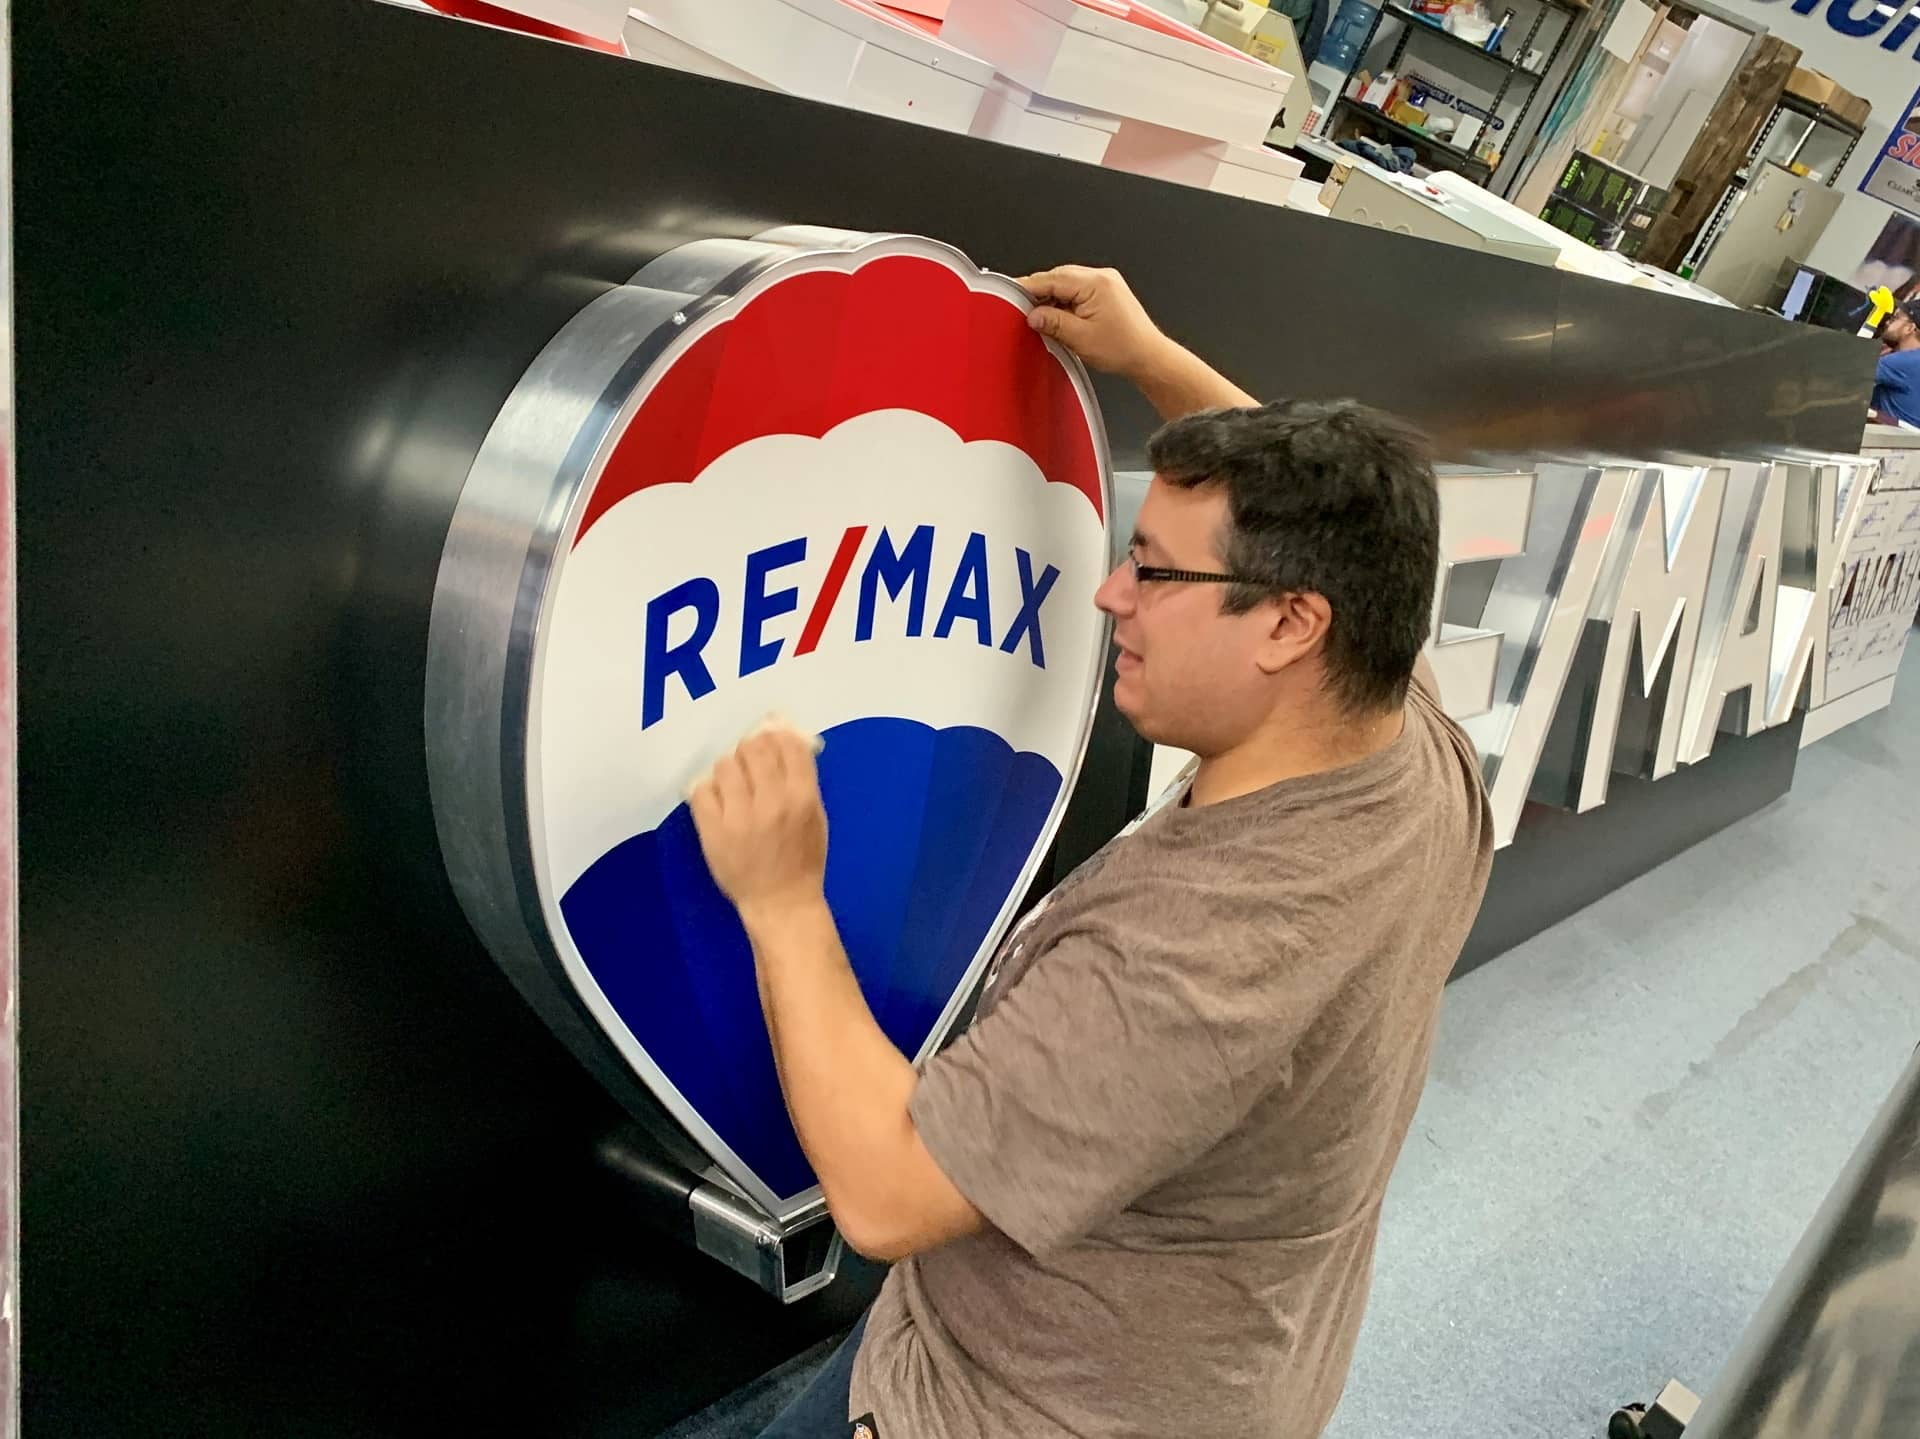 Remax signs by Signarama Toronto